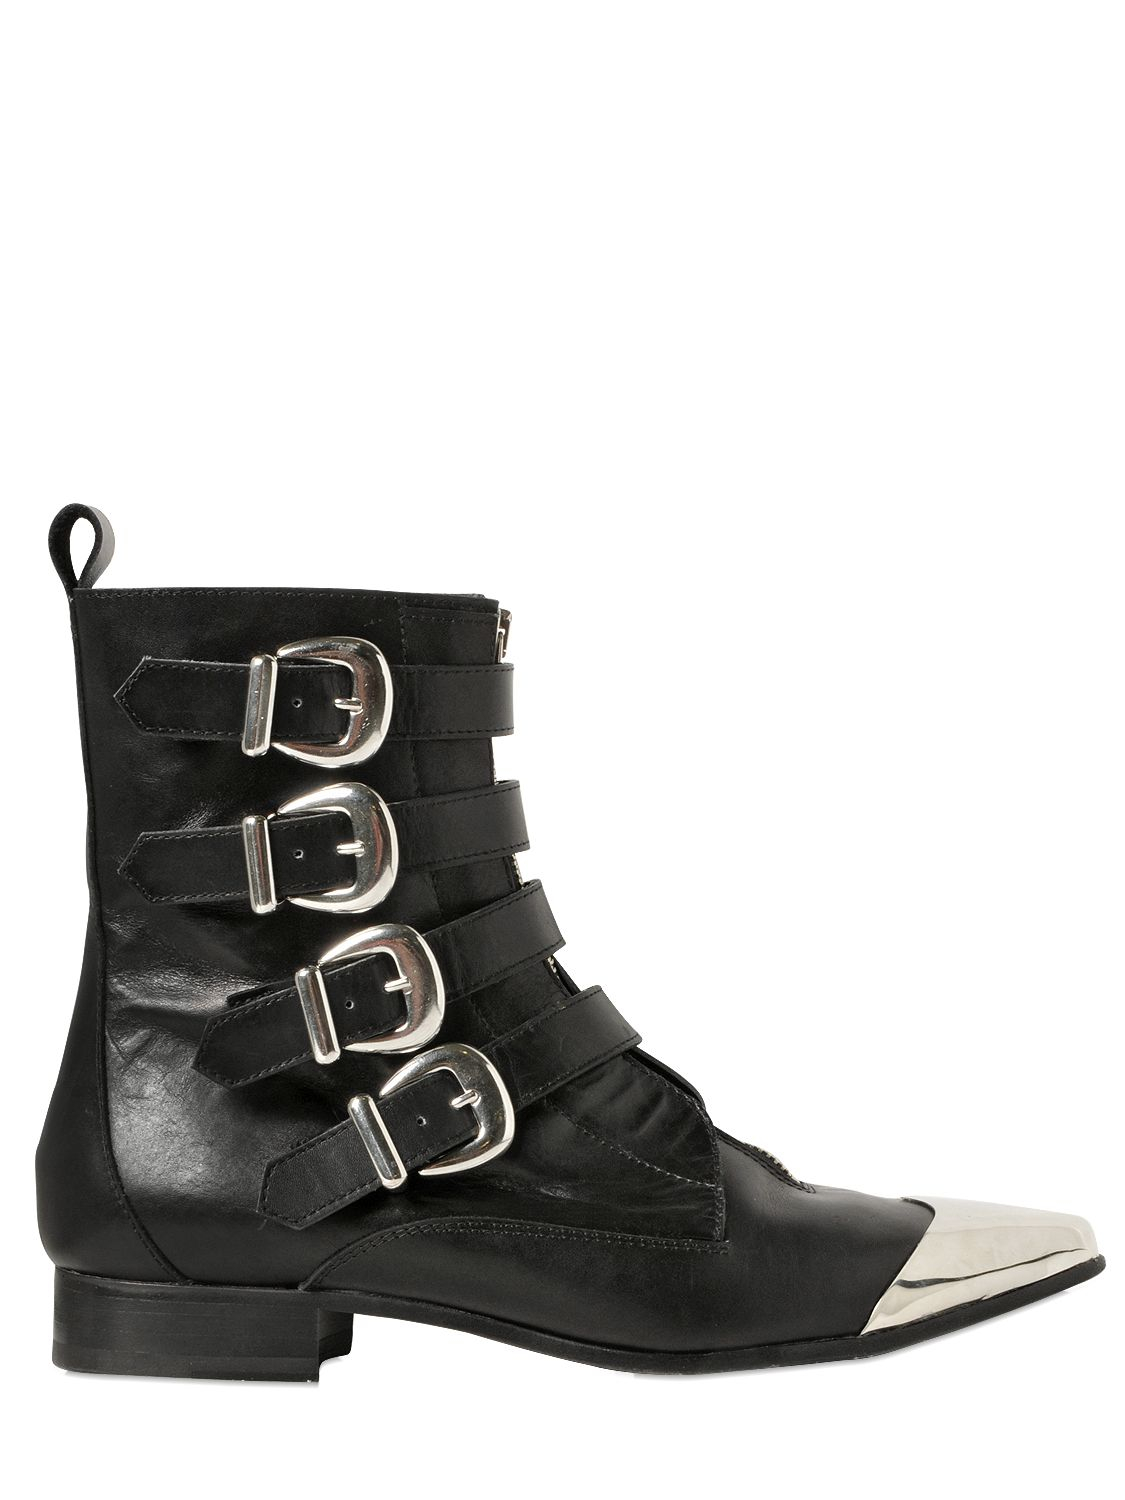 Diesel black gold 25mm Metal Toe Leather Boots in Black | Lyst